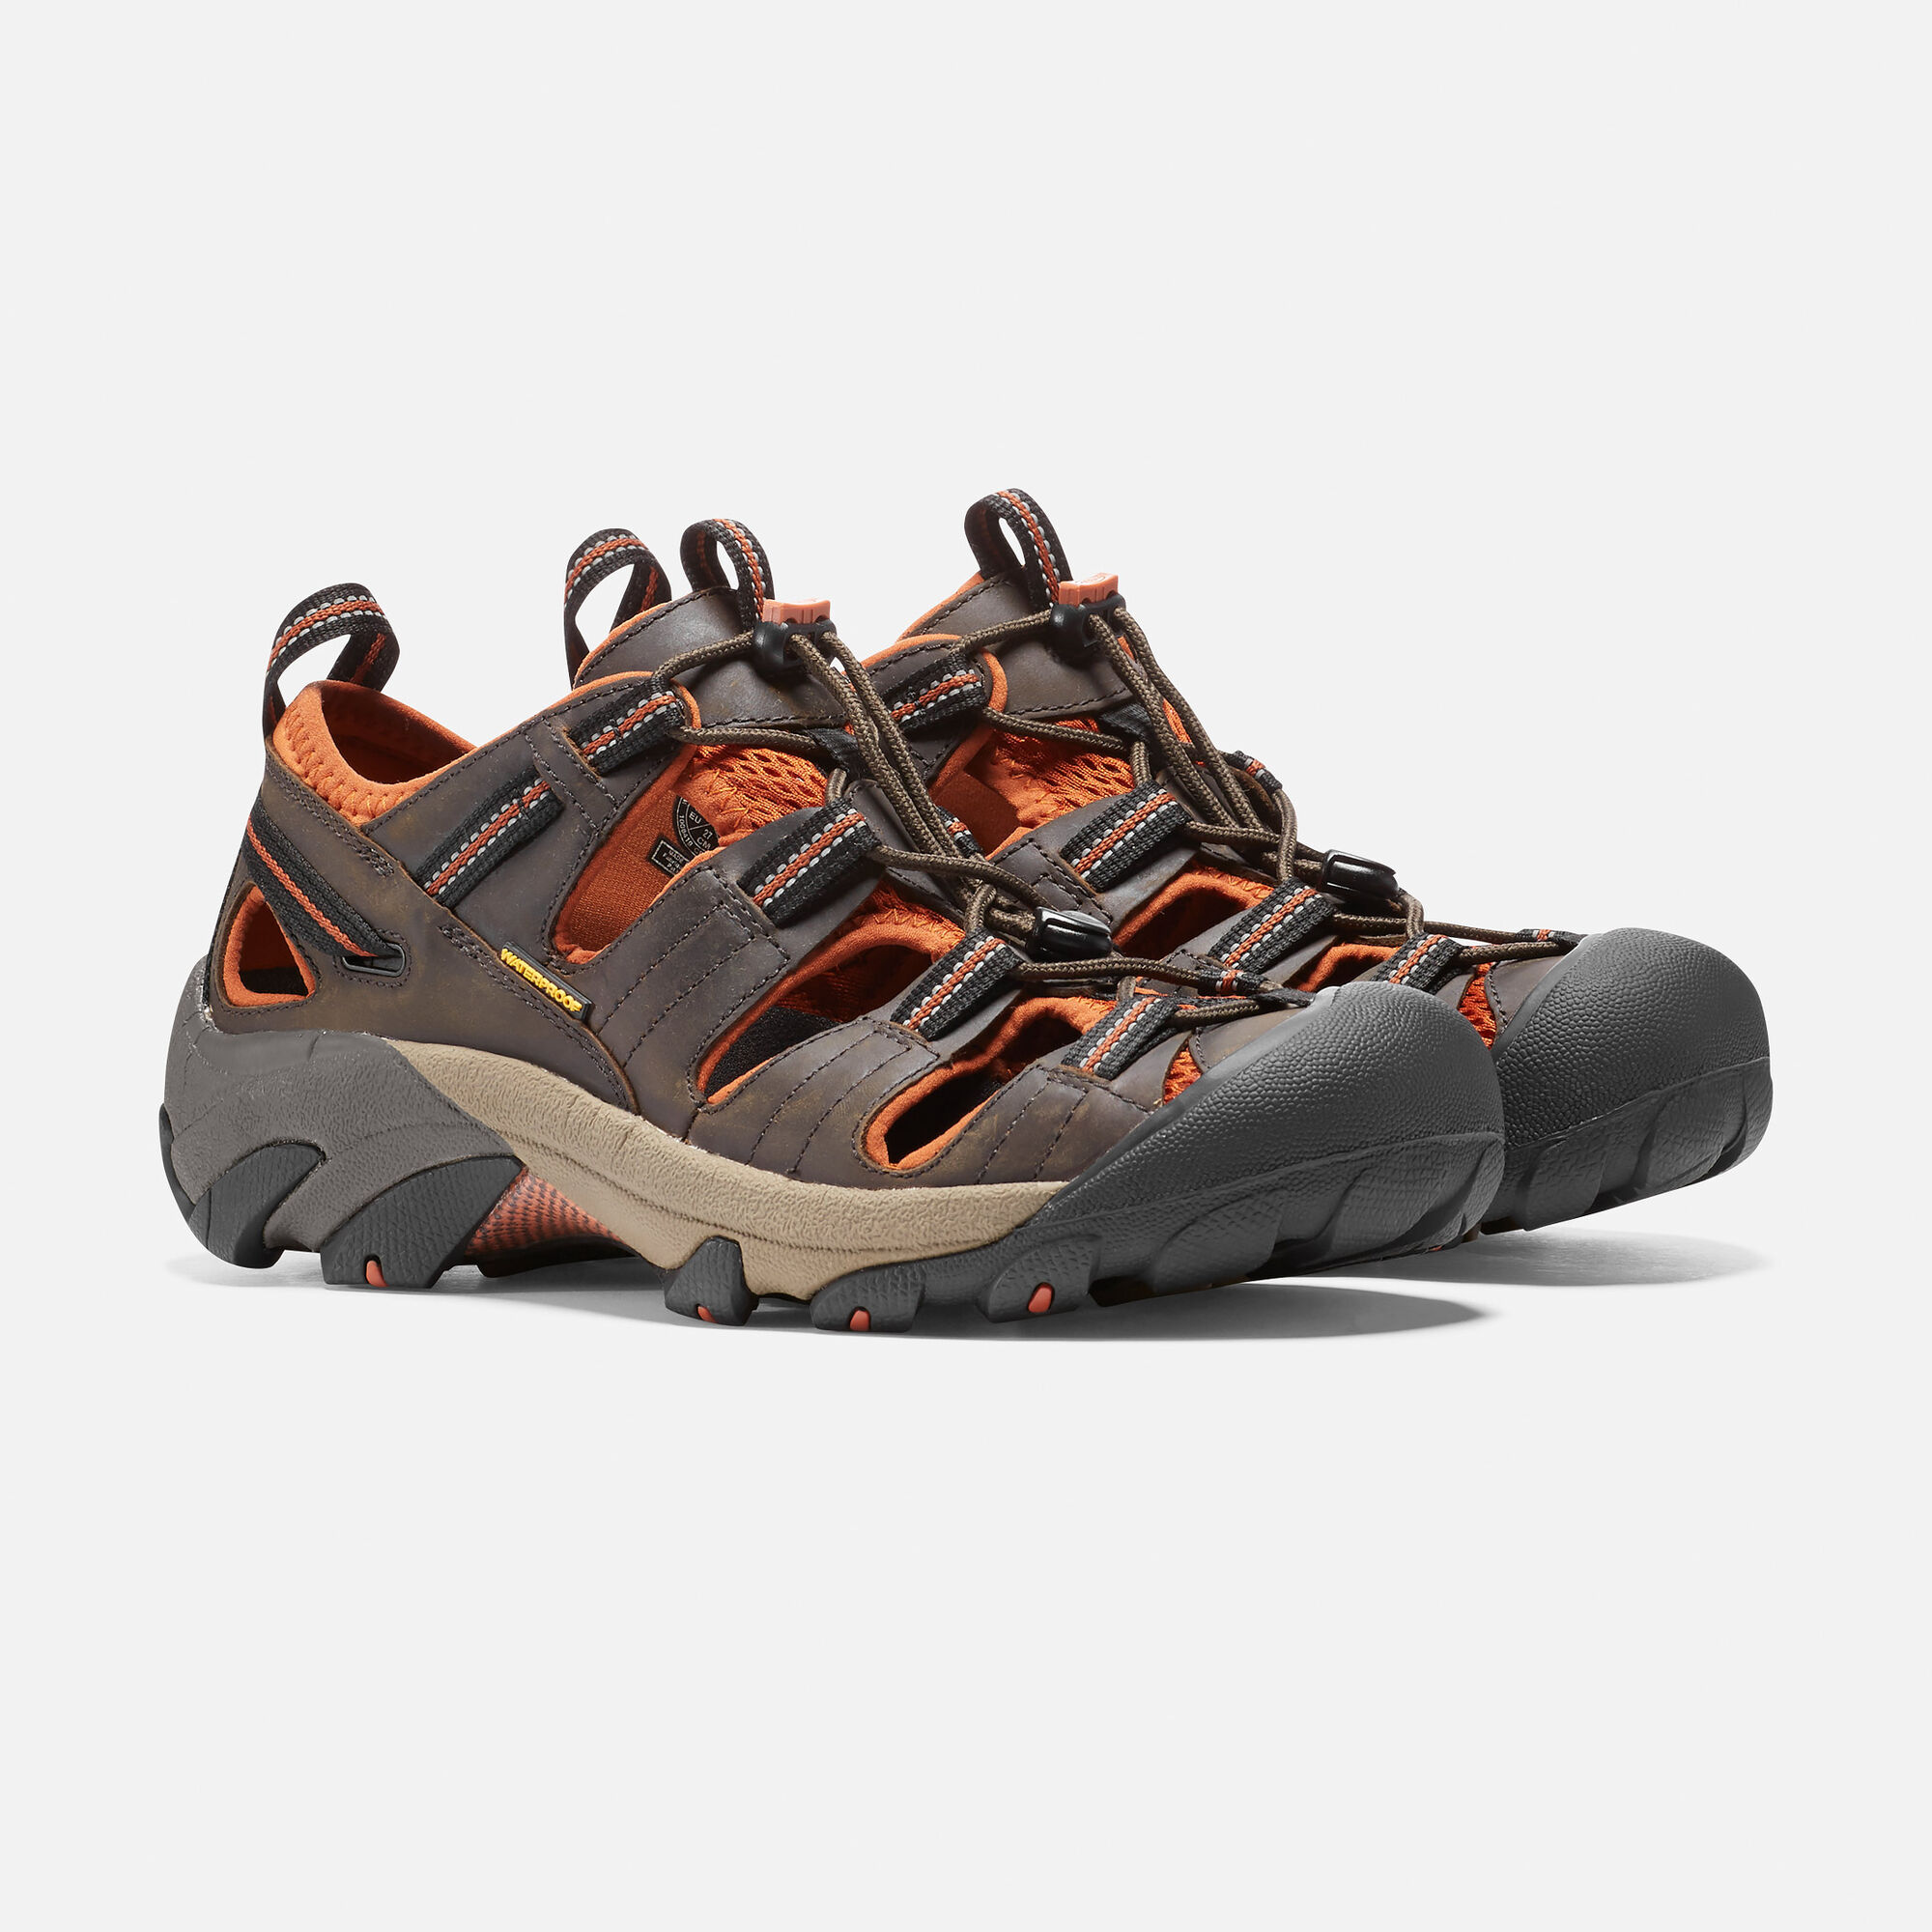 81d3d0921638 Men s Arroyo II - Hiking Sandal Shoe